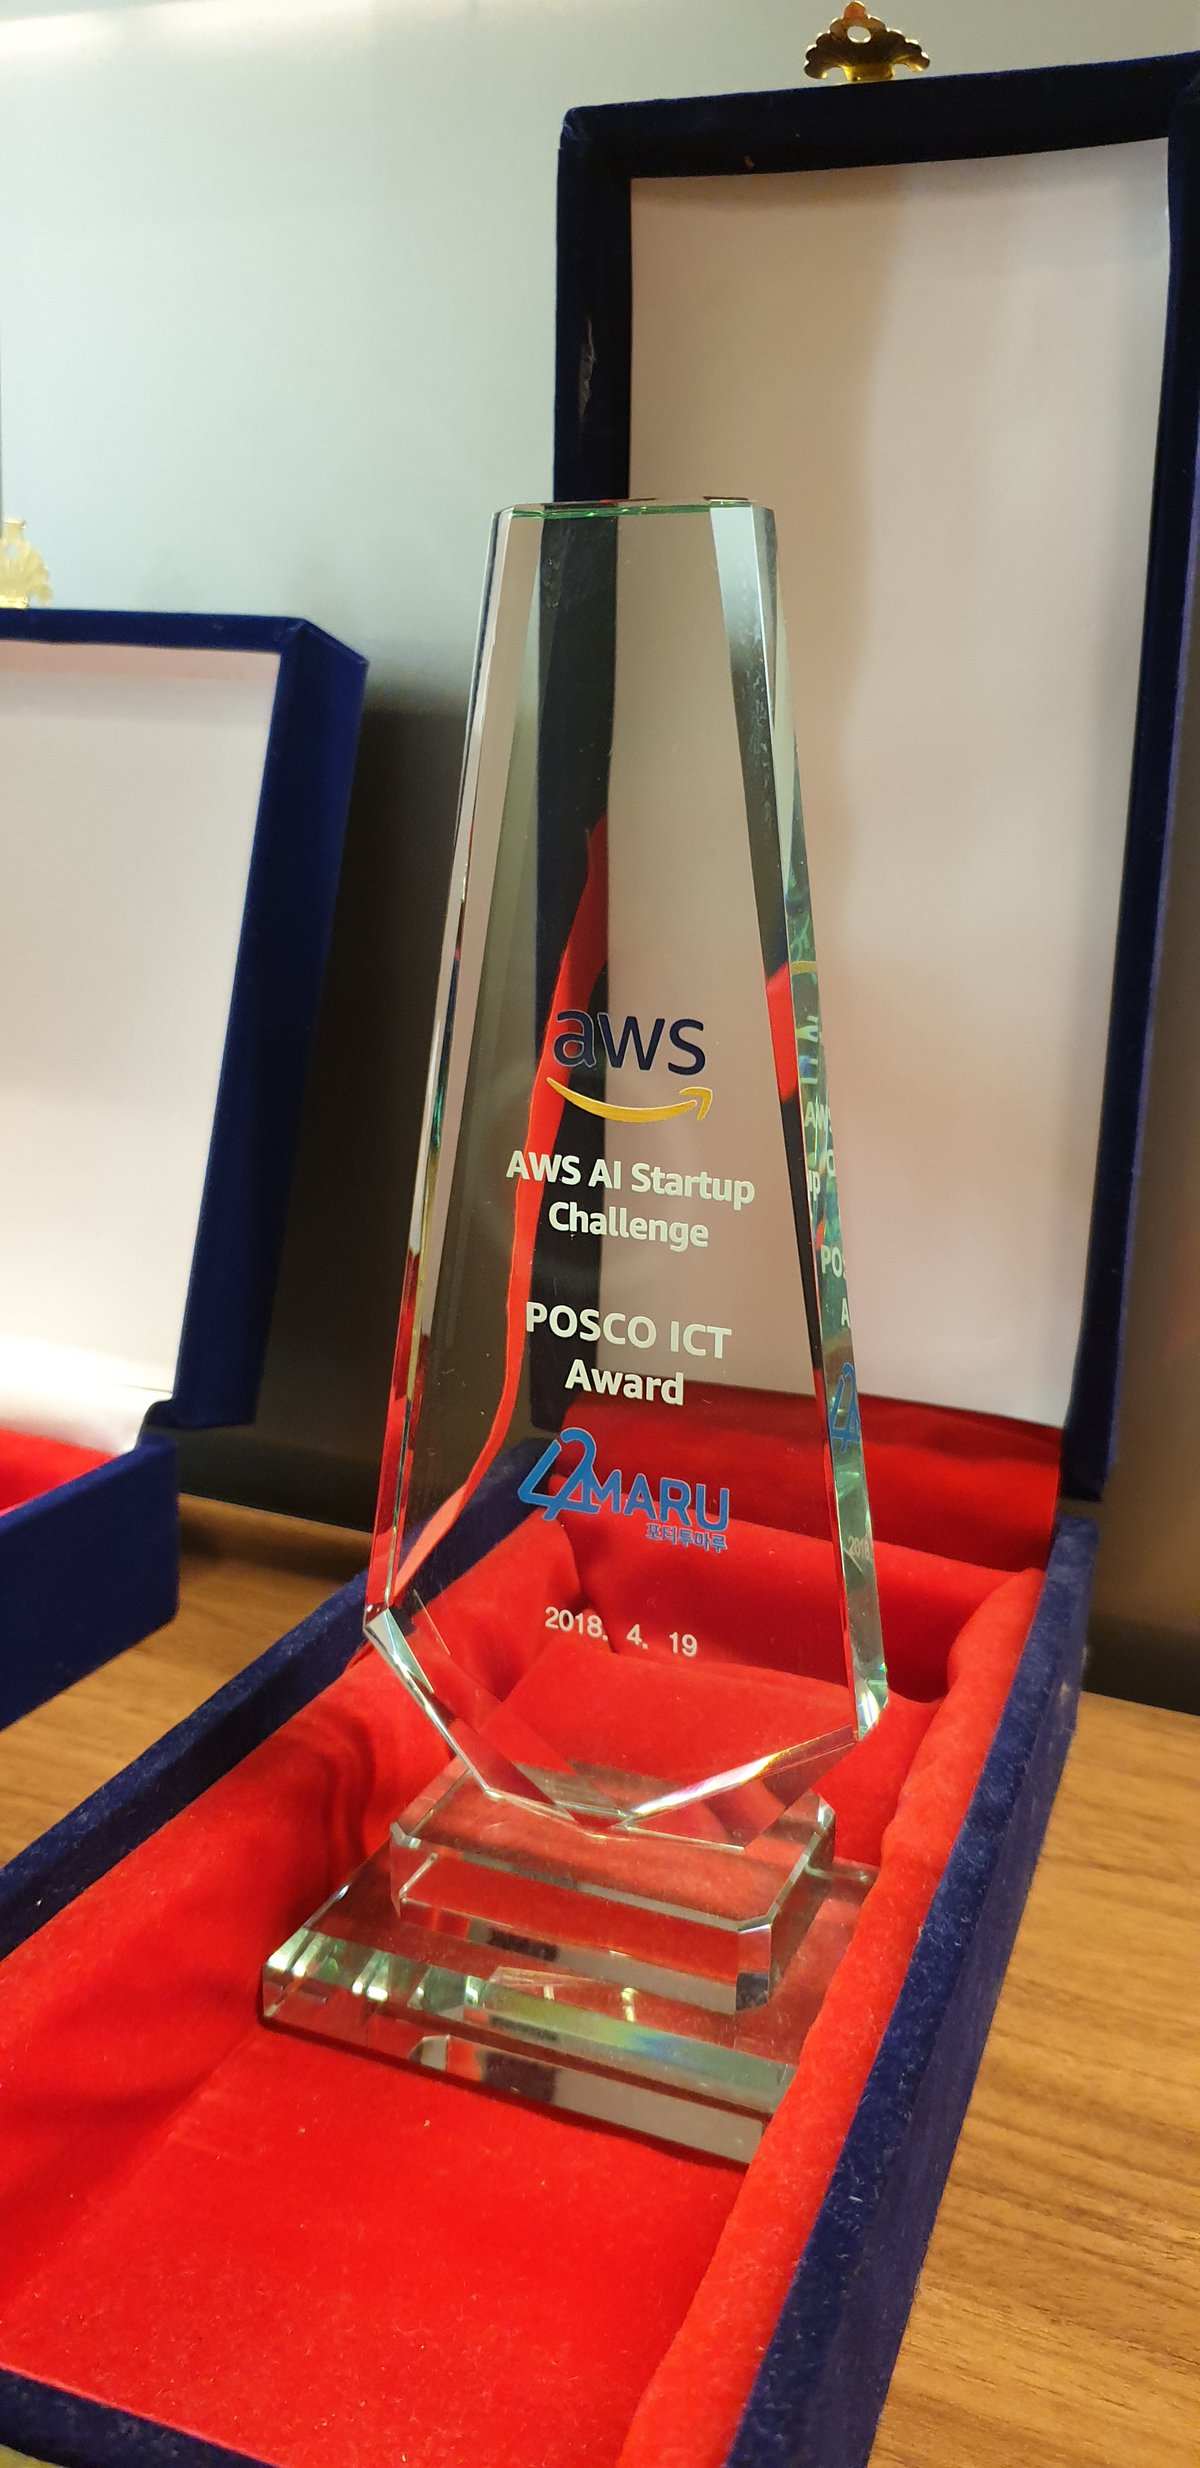 AWS Amazon Award